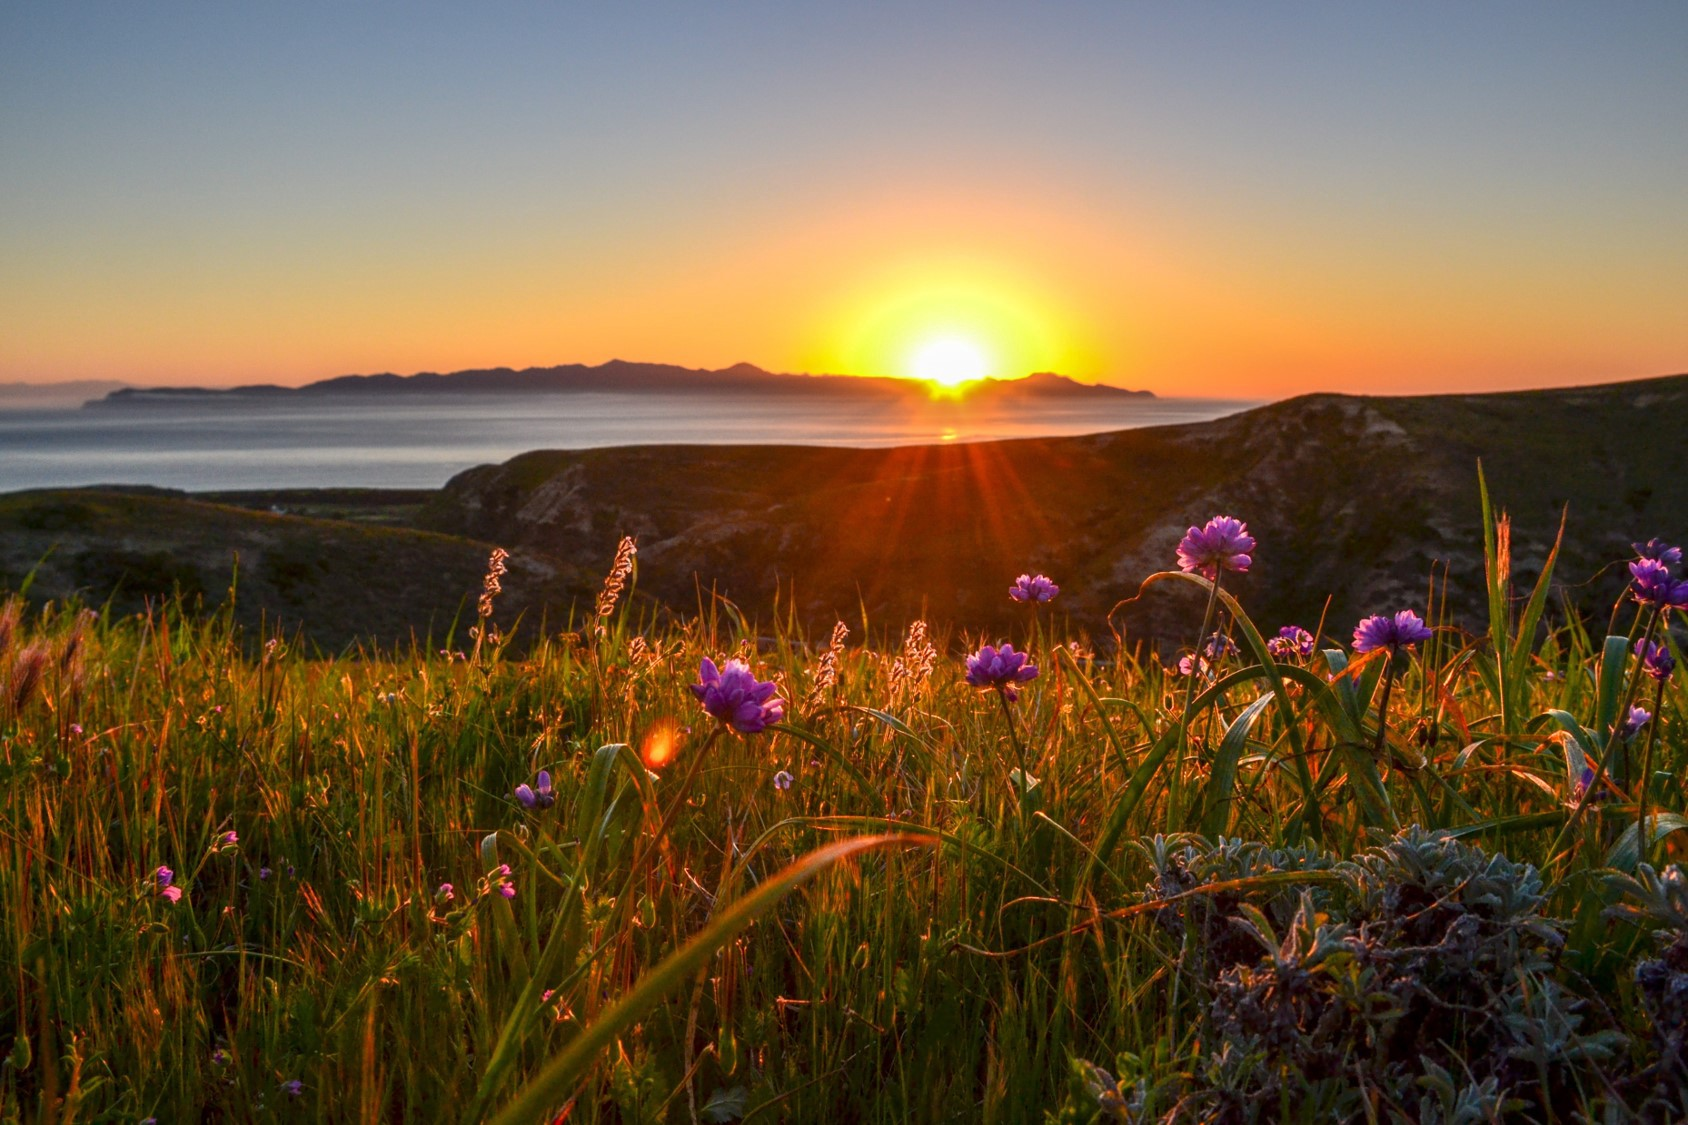 sunset over an ocean with purple lupine in the foreground